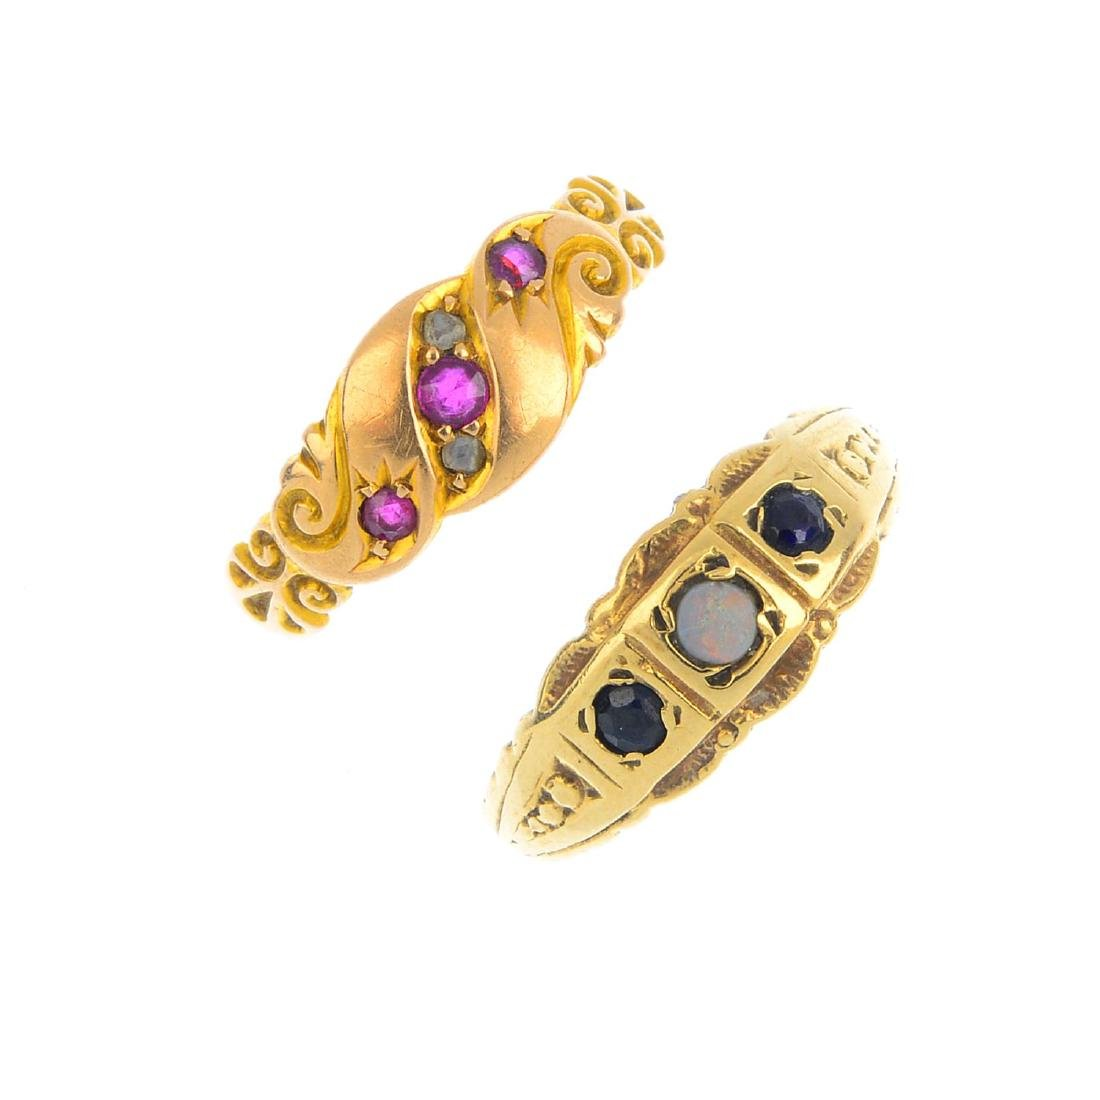 Four diamond and gem-set rings. To include an early